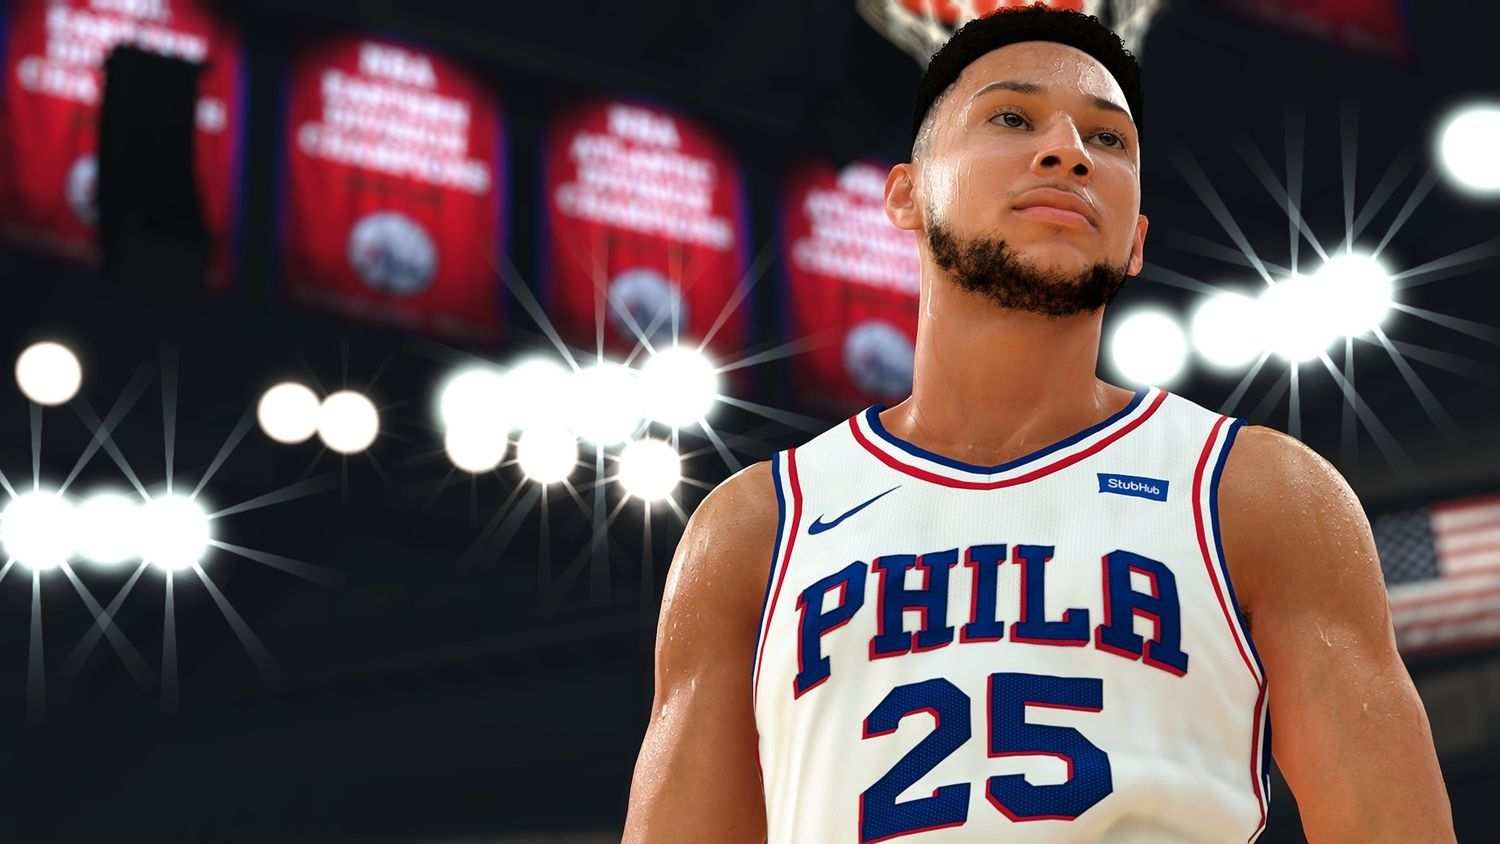 NBA 2K19 (Nintendo Switch) - 3